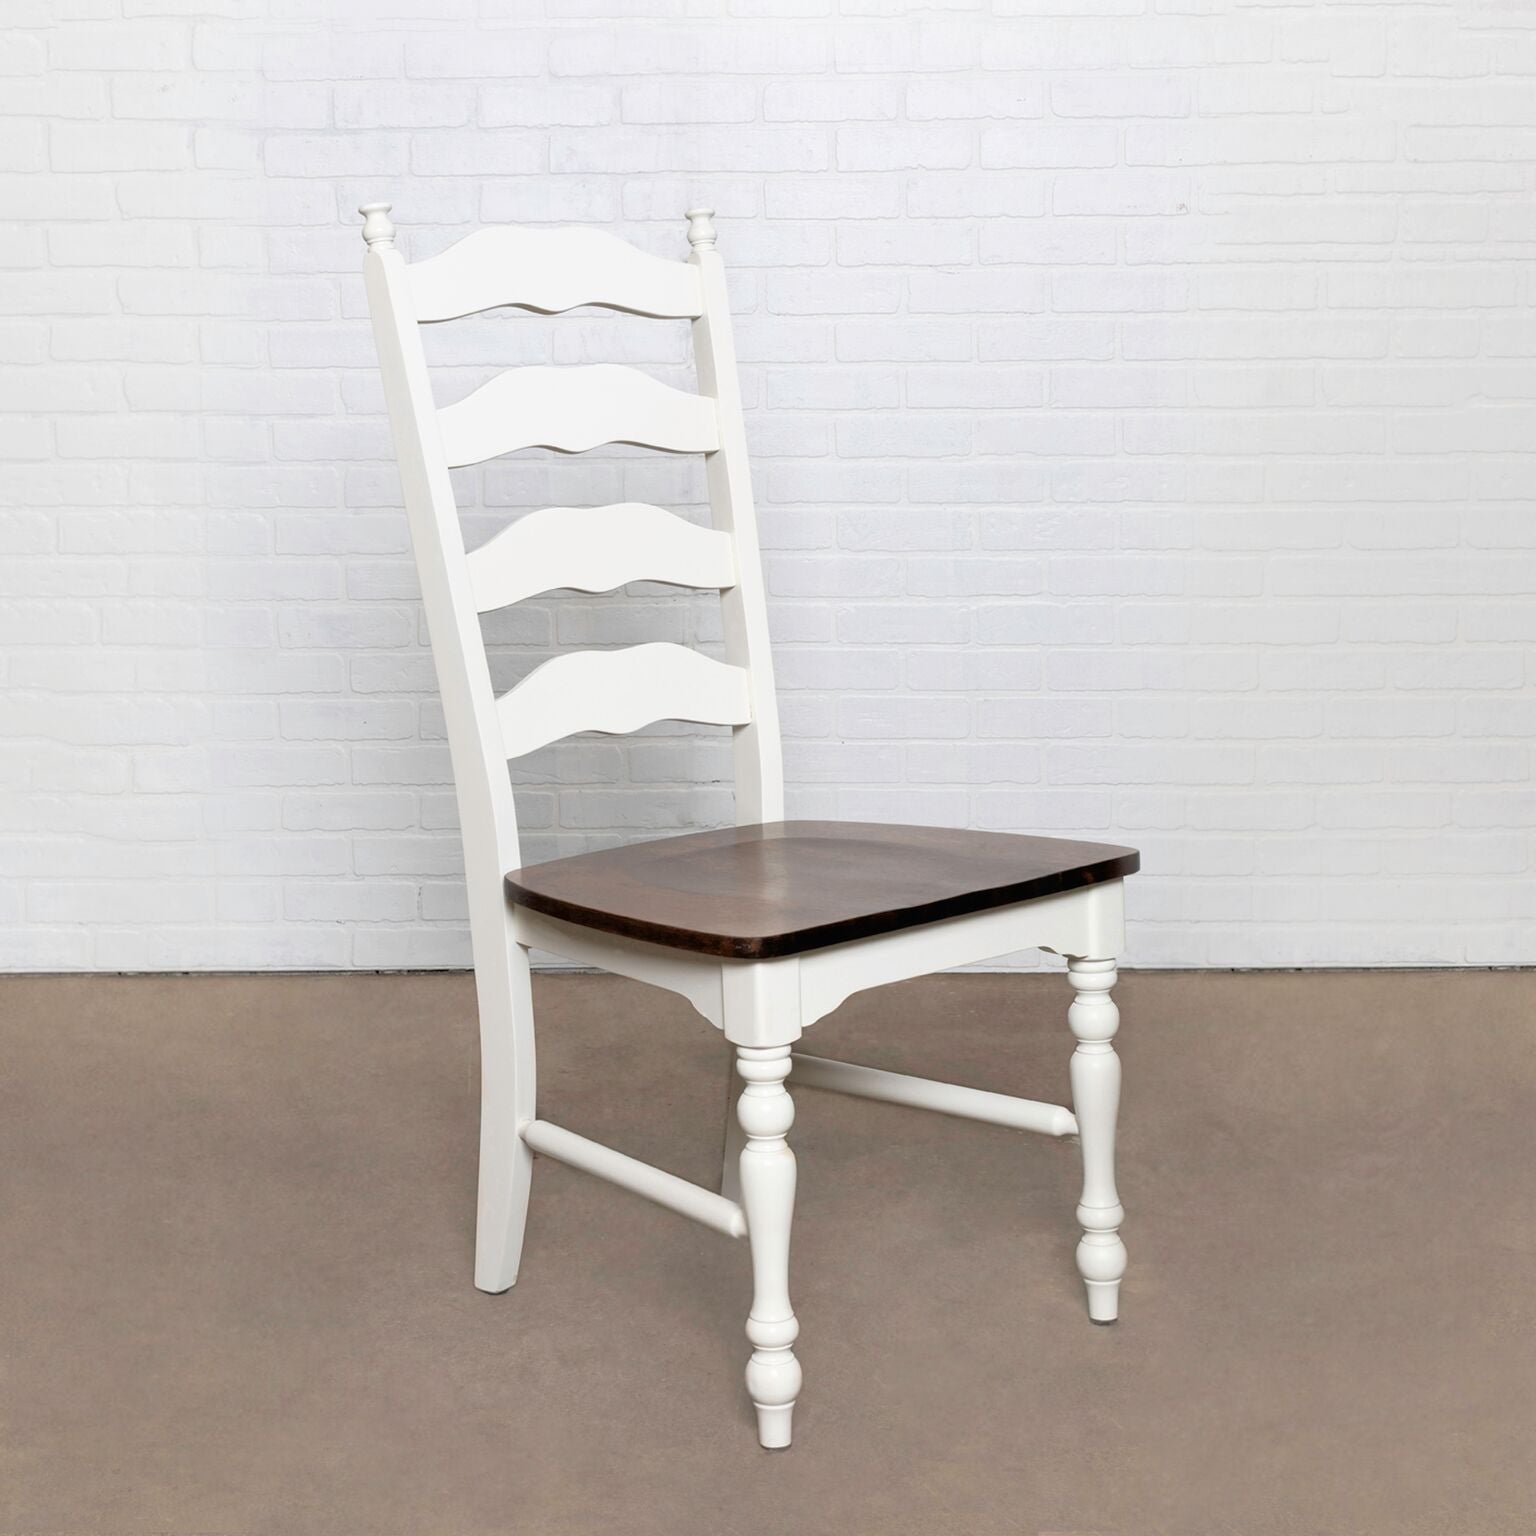 Seating | The Lakeland Chair | Antique White Distressed | WW SKU: C-2170B  and KK SKU: LAK-DC-1, Width: 19.75, Depth: 18, Height: 20, Weight: 20 | Wood |